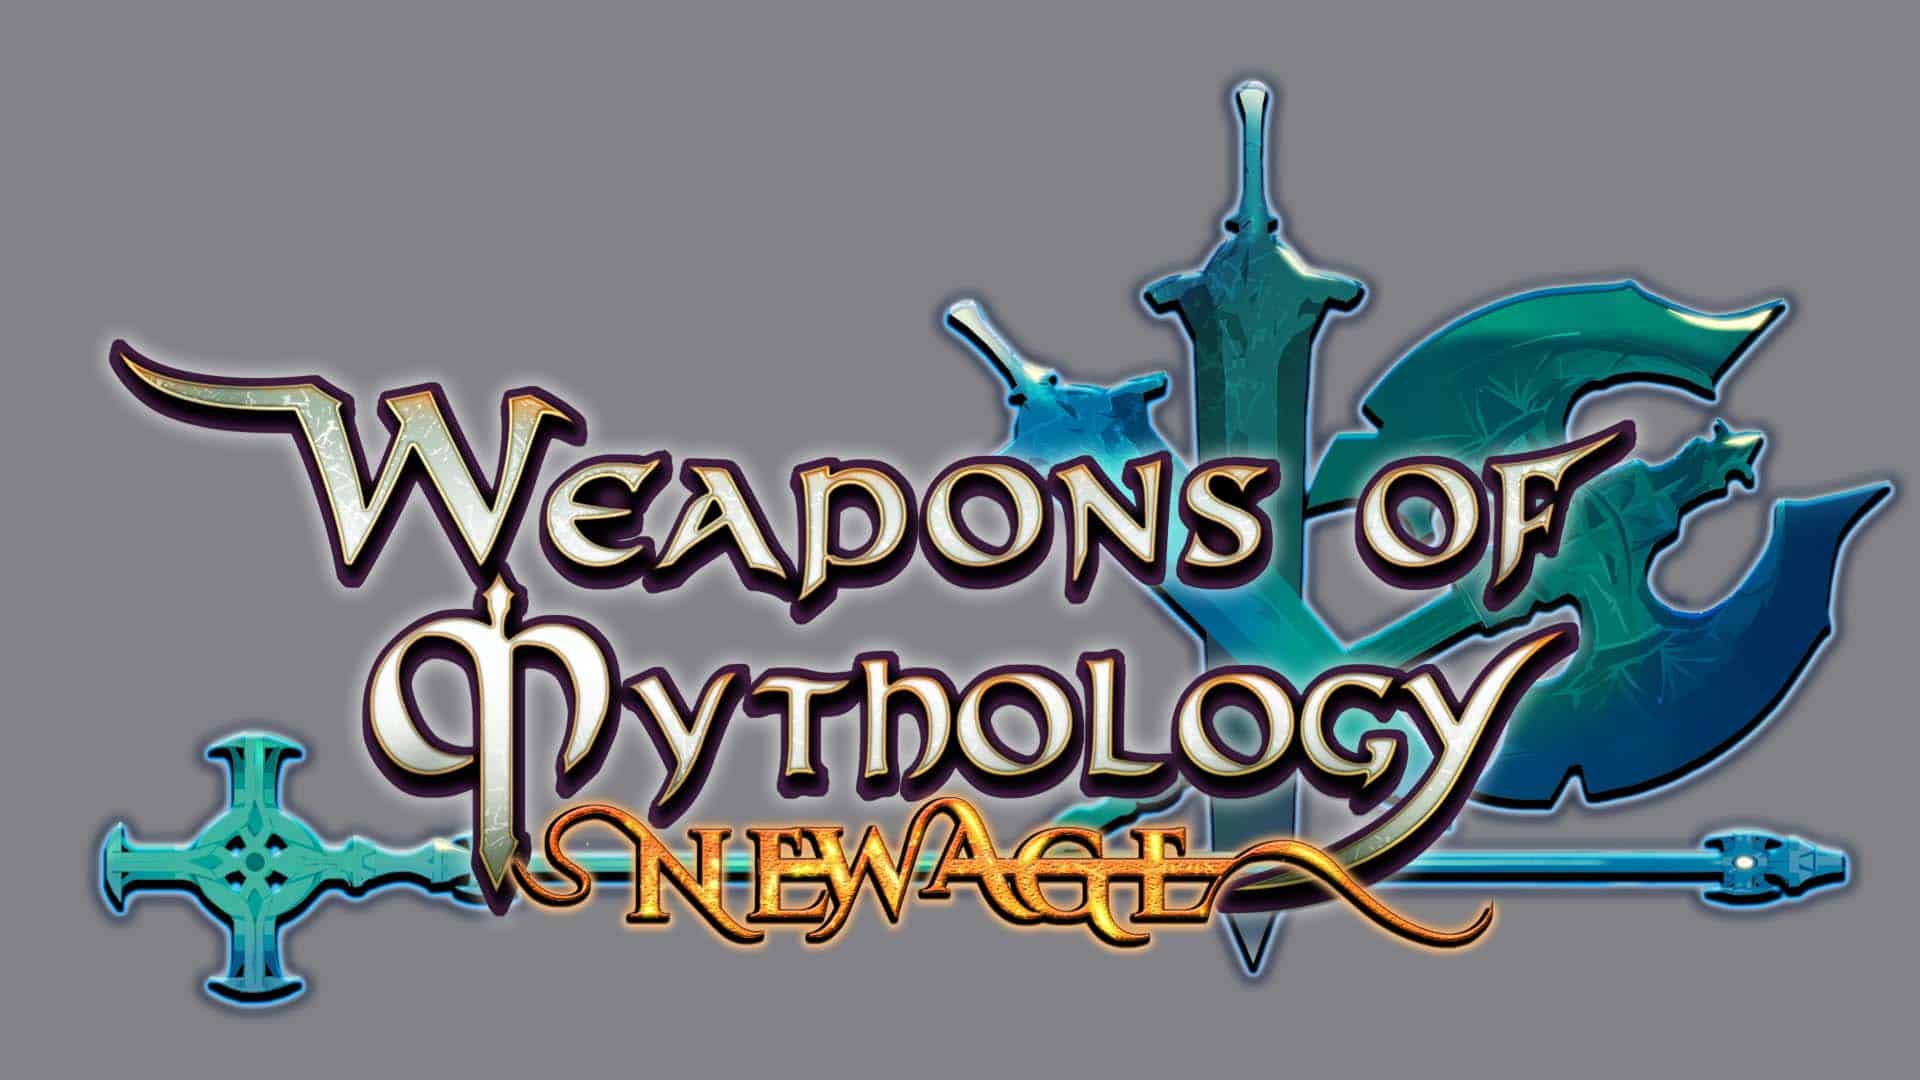 [PREVIEW] Weapons of Mythology New Age : un bon MMORPG ?